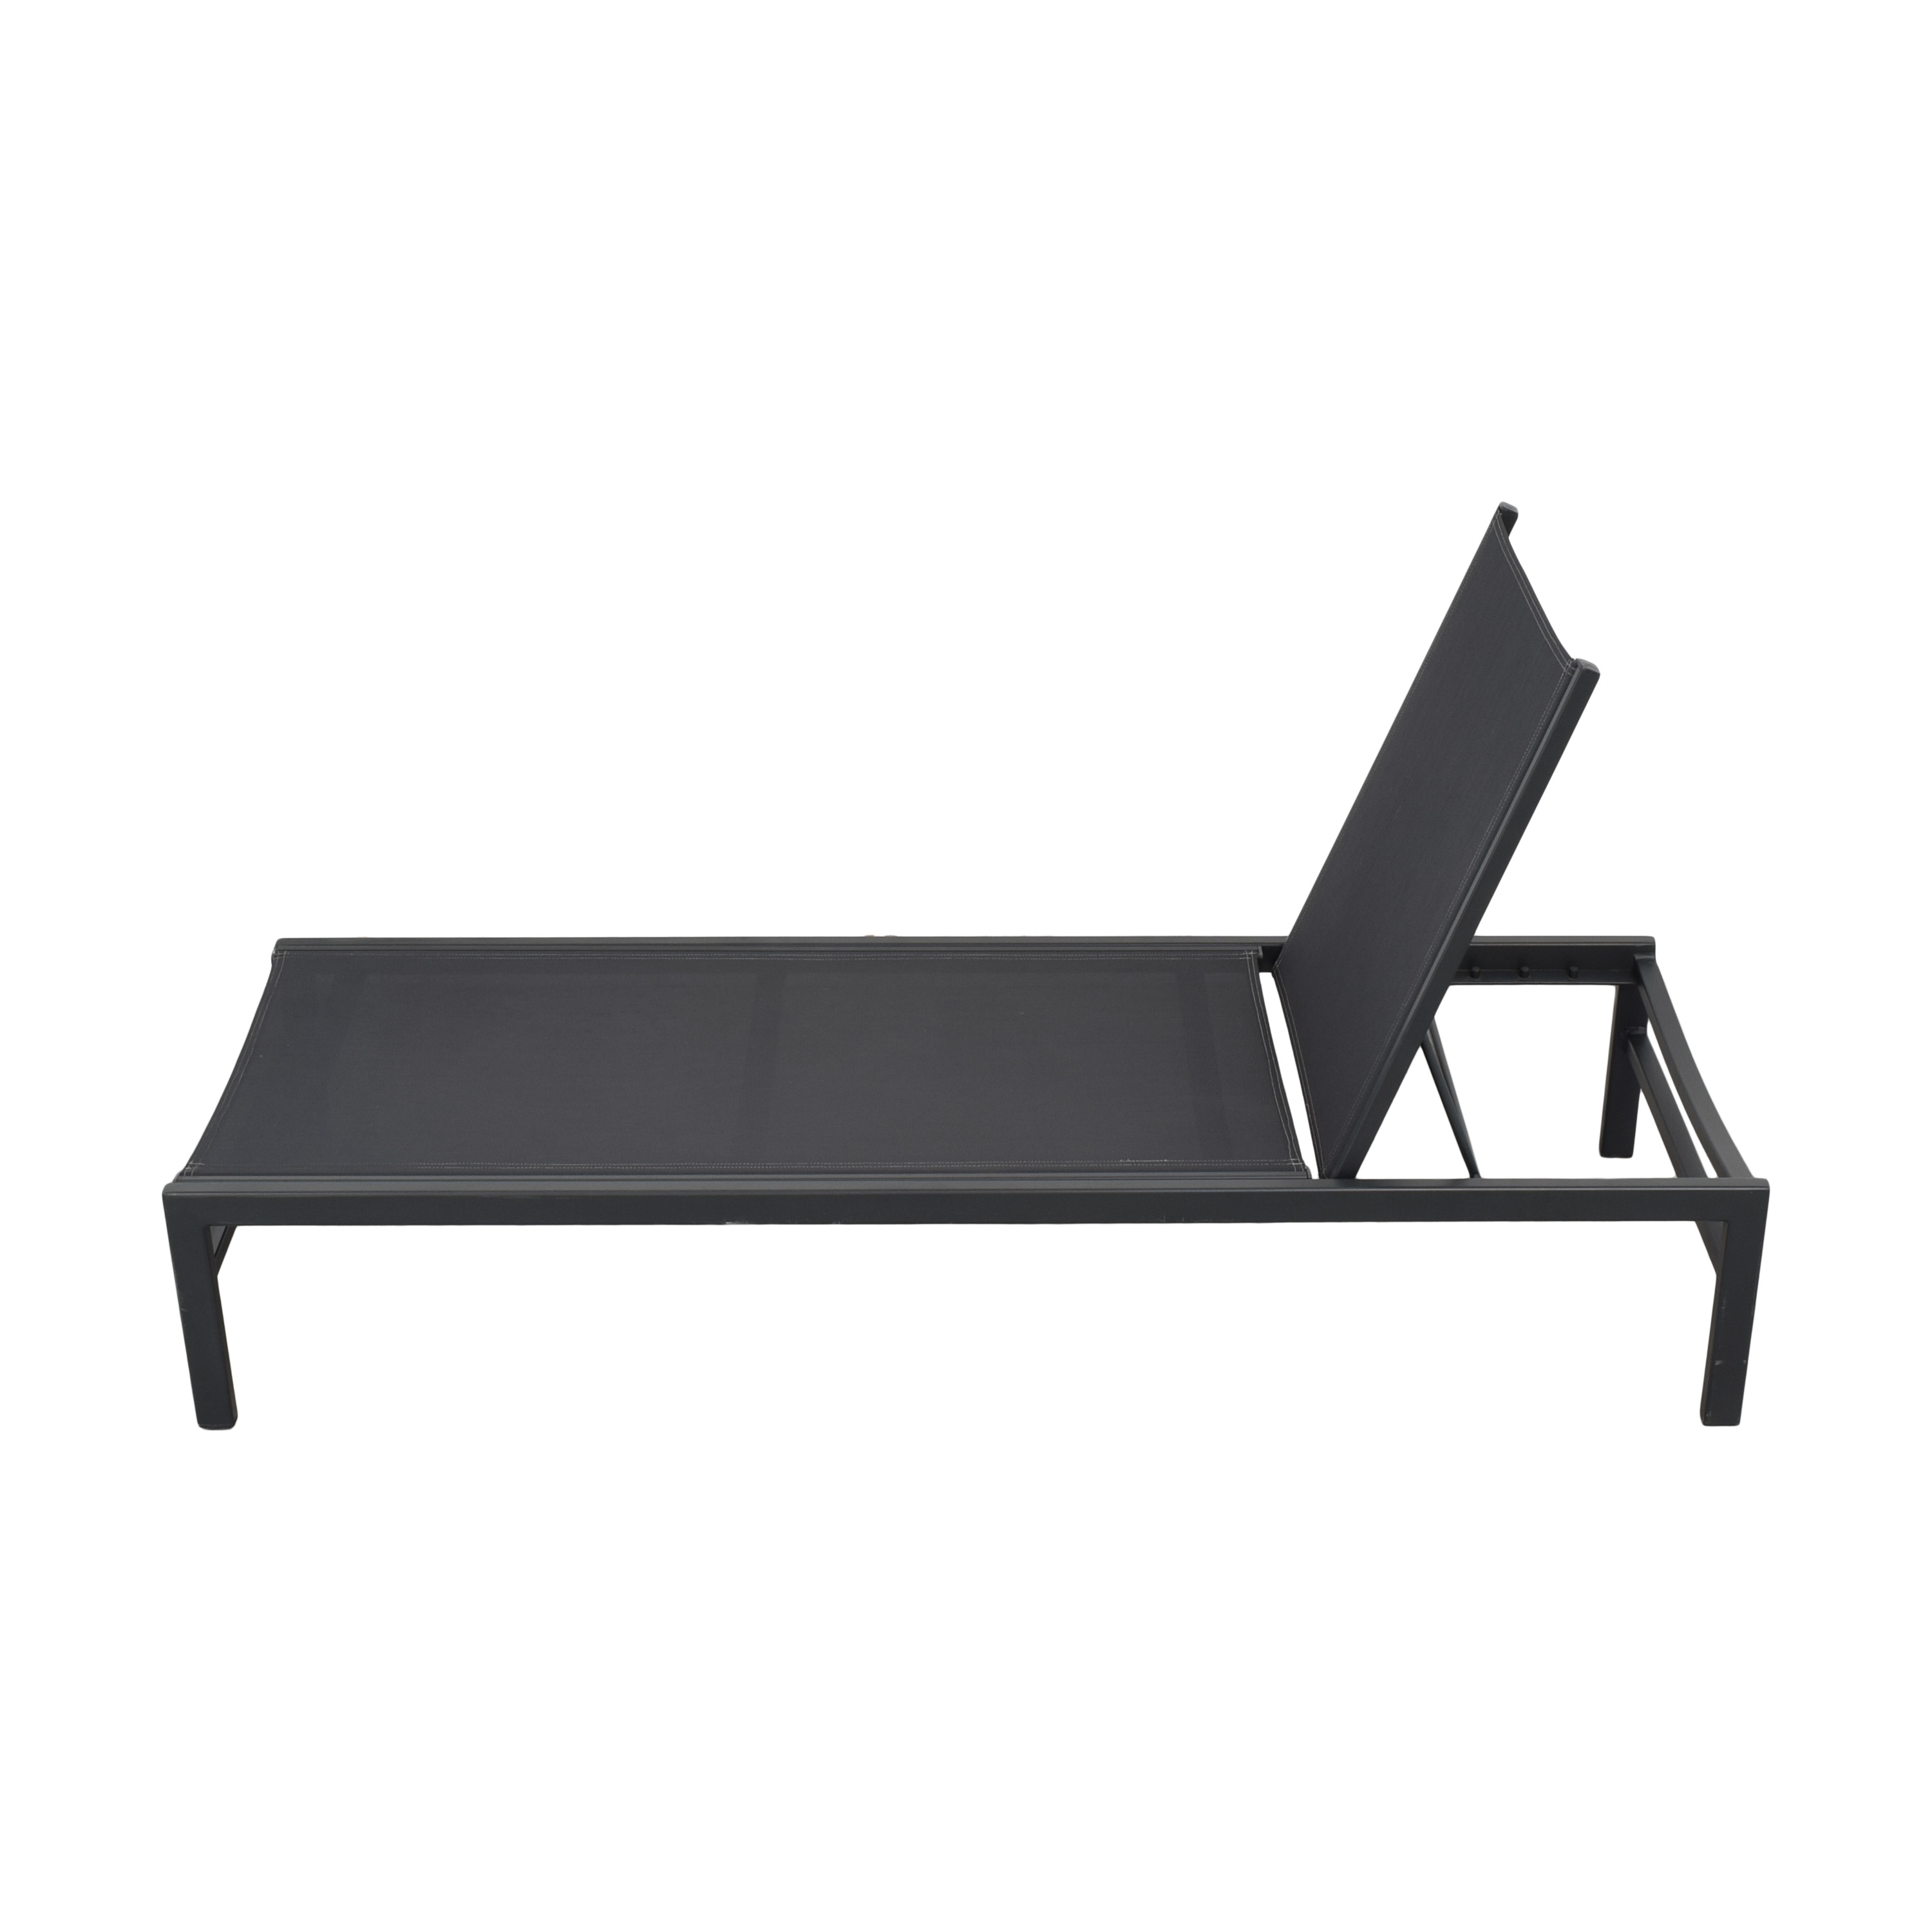 CB2 CB2 Idle Outdoor Lounger dimensions